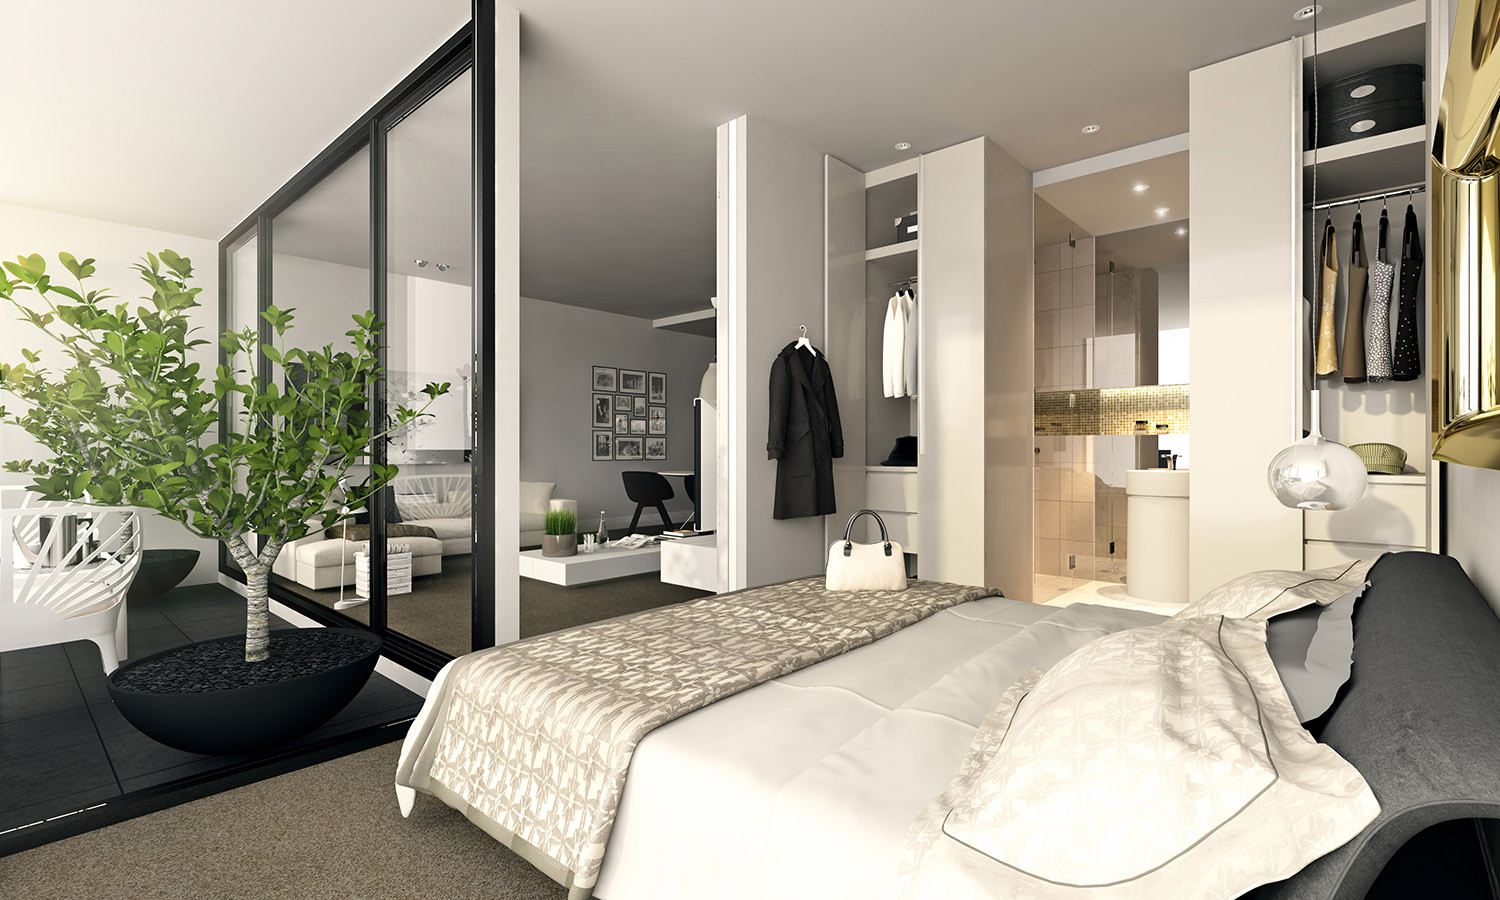 Best ideas about Apartment Bedroom Ideas . Save or Pin Studio Apartment Interiors Inspiration Now.